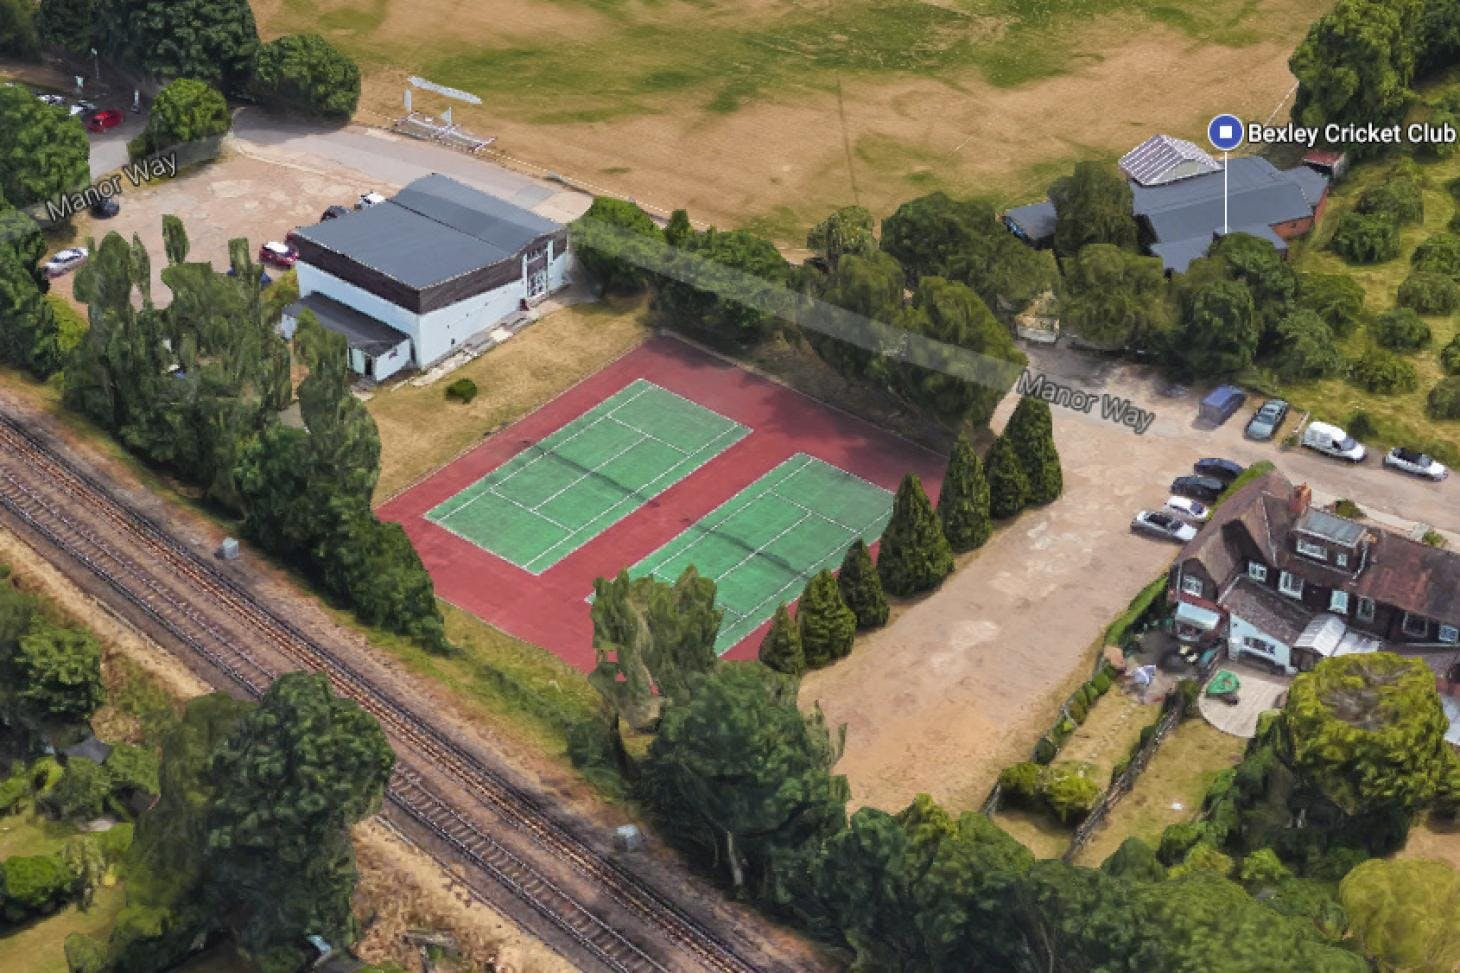 Bexley Cricket Club Outdoor | Hard (macadam) tennis court